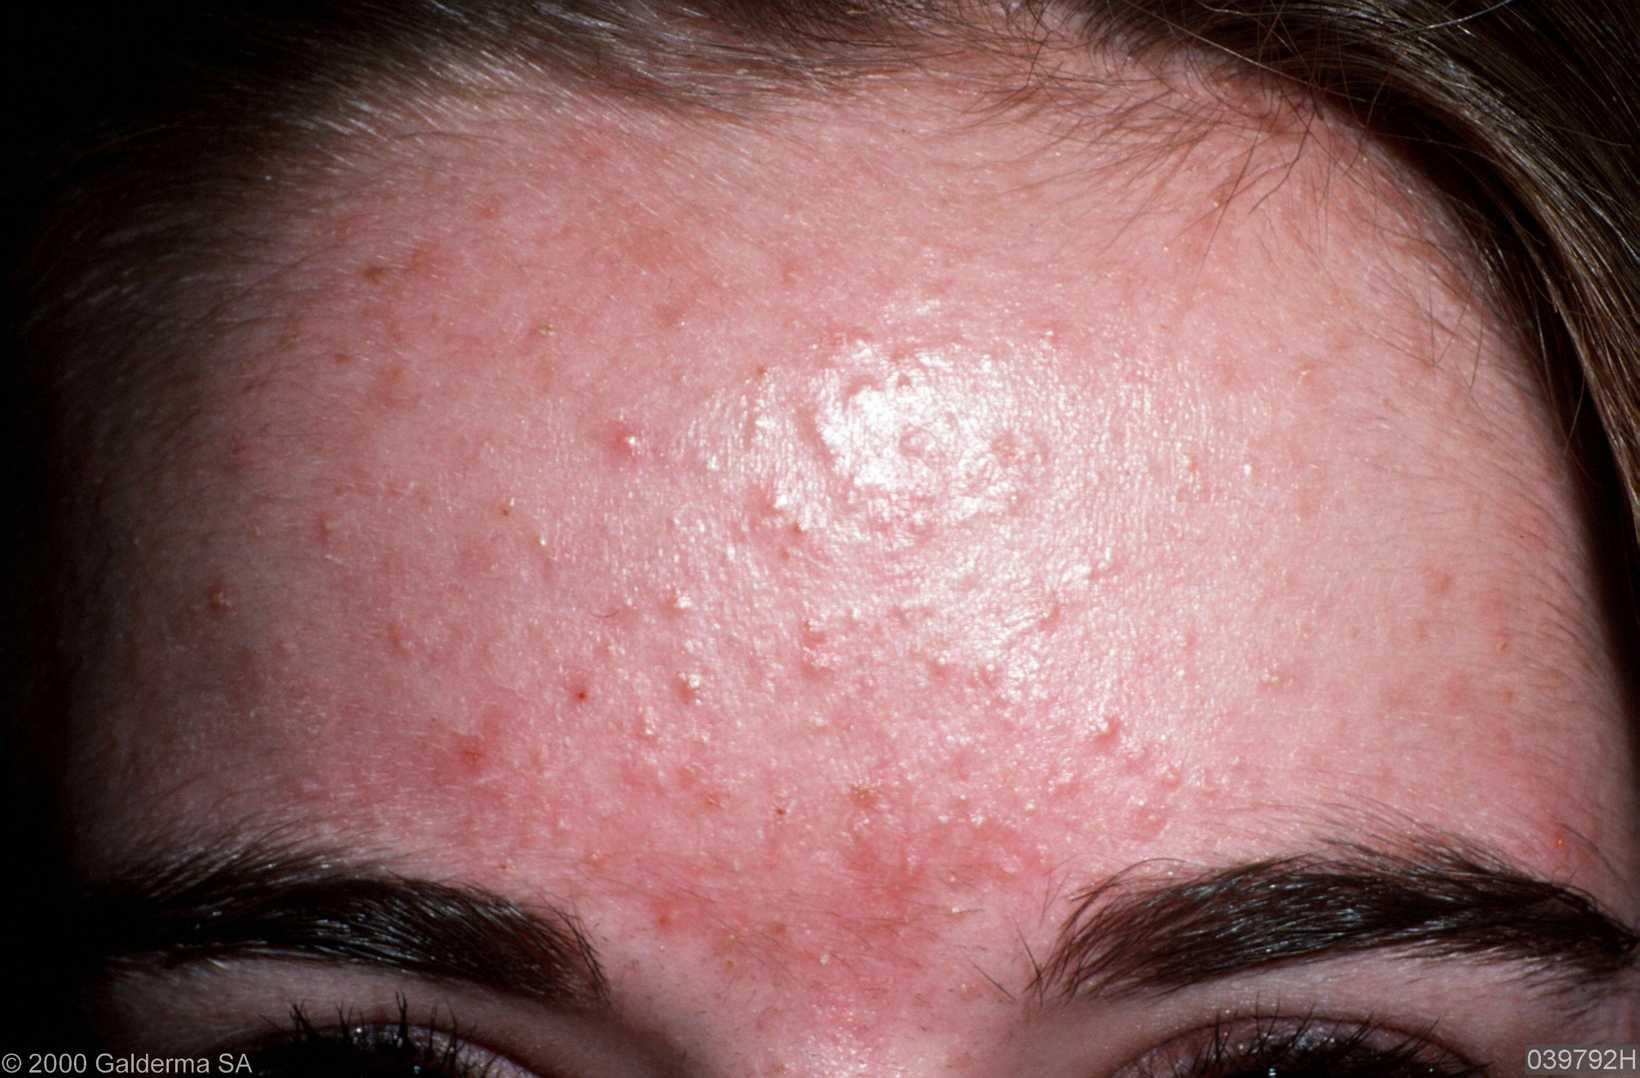 Malassezia (Pityrosporum) Folliculitis - PubMed Central (PMC)